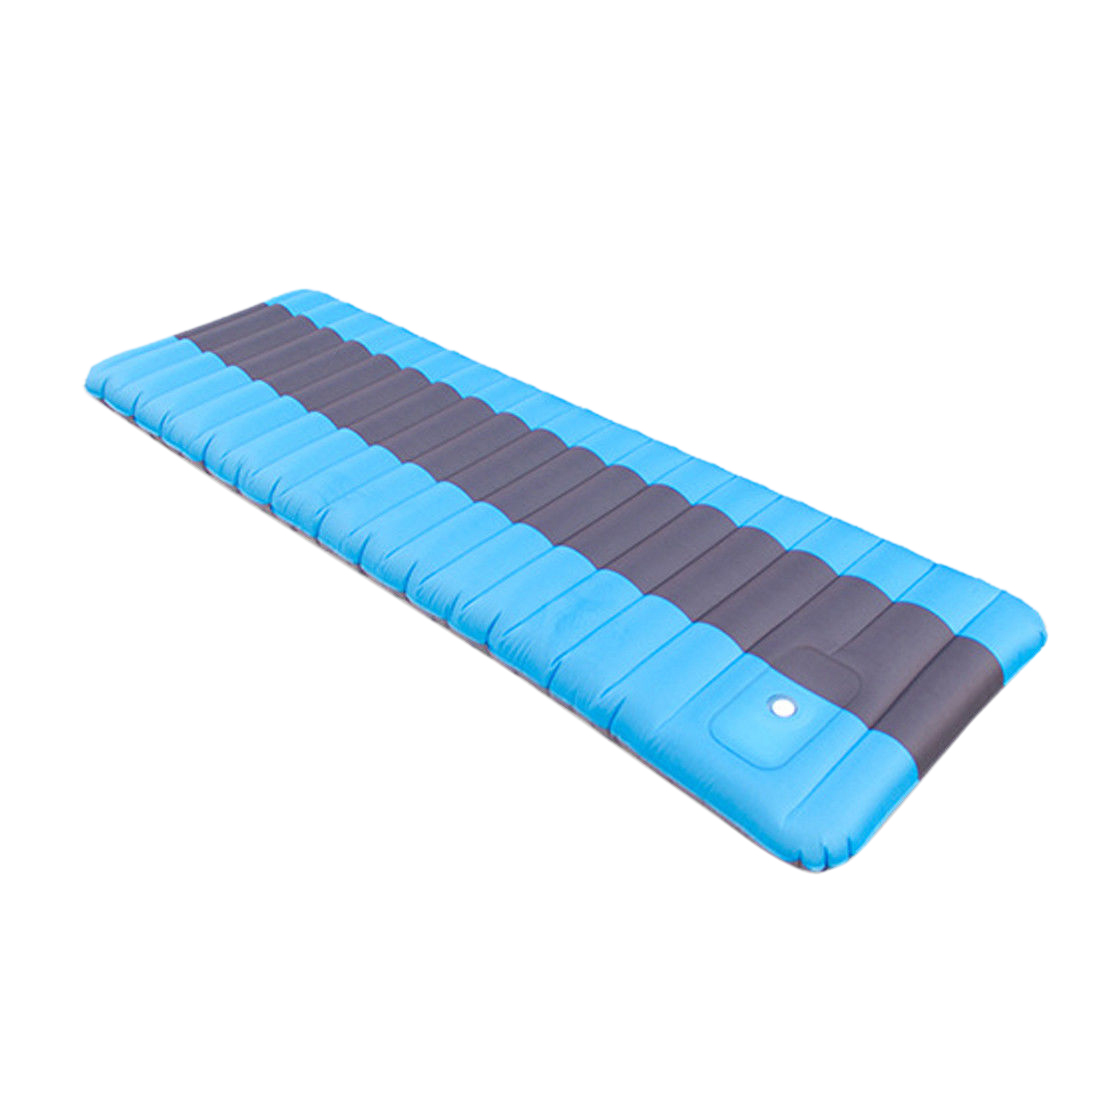 New Sale Outdoor Self Inflating Sleeping Pad Camping Air